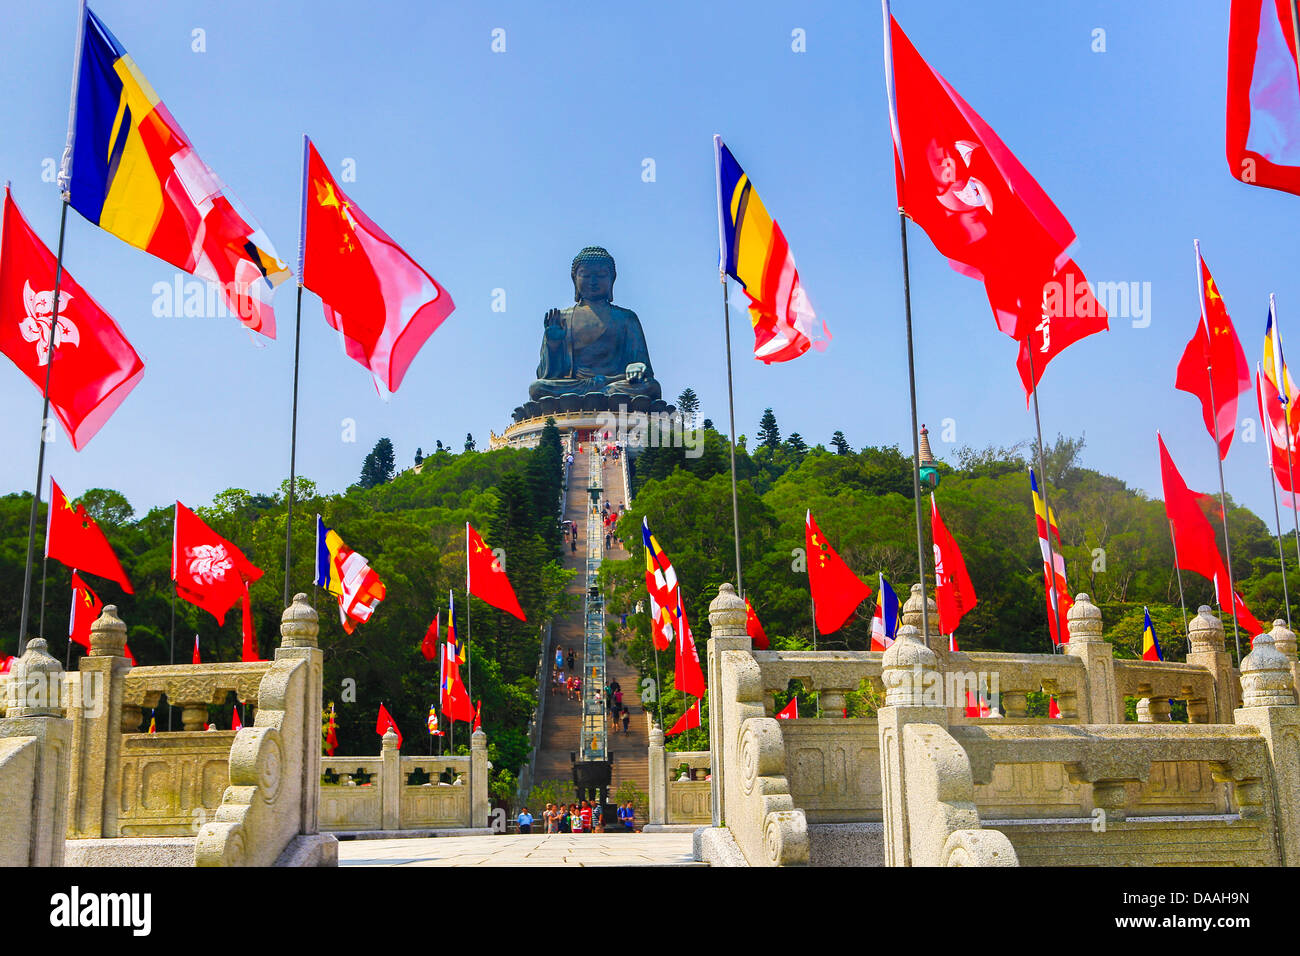 Hong Kong, China, Asia, City, Lantau, Giant Tian Tan, biggest, Buddha, colourful, faith, flags, hill, red, religion, - Stock Image